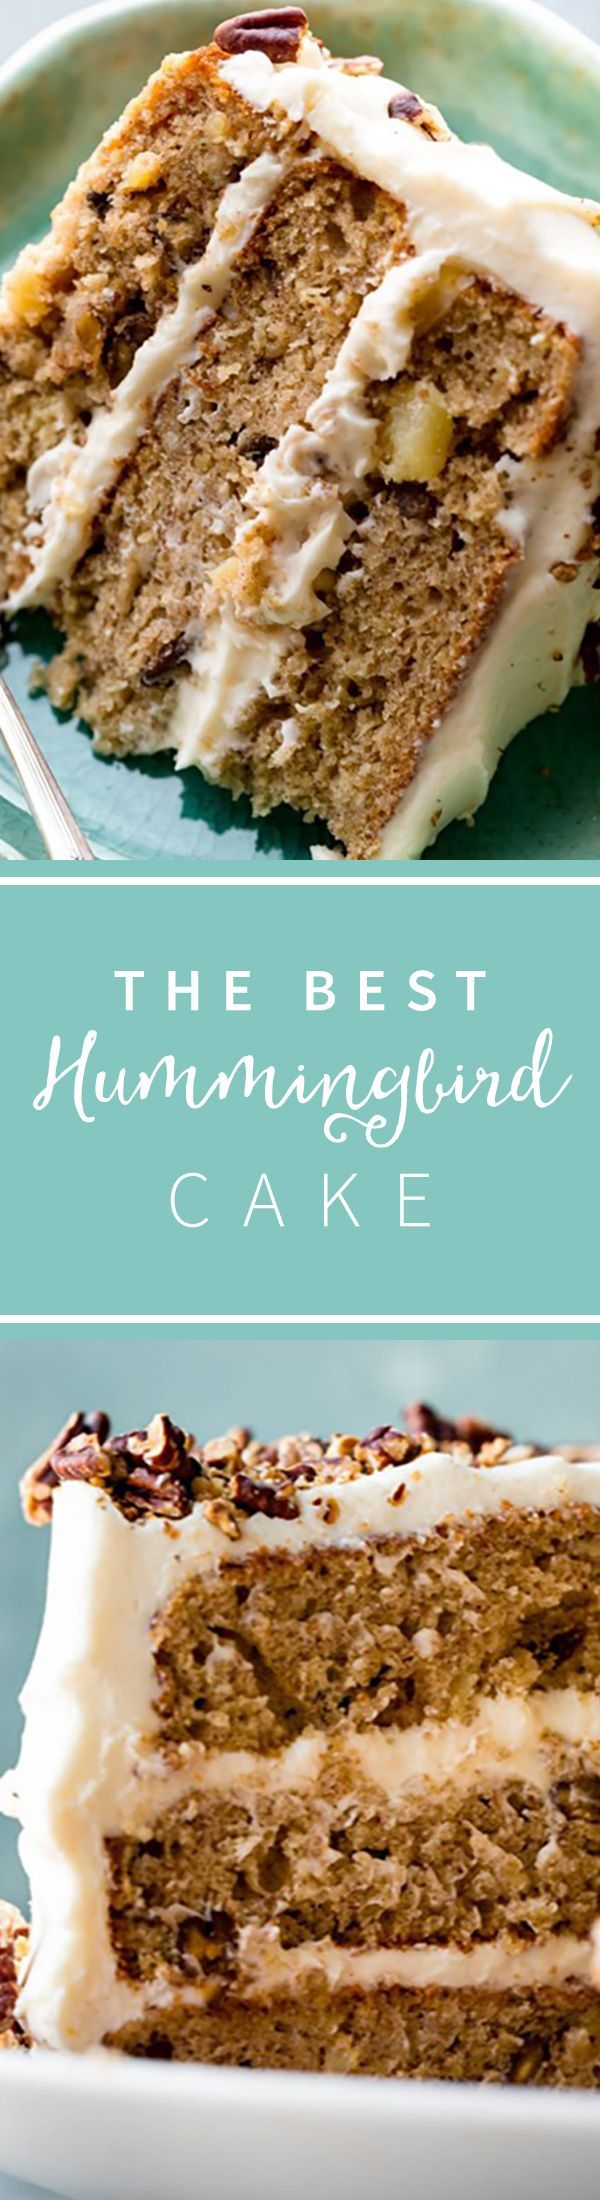 847 best Party Recipes: Cakes images on Pinterest | Healthy apple ...